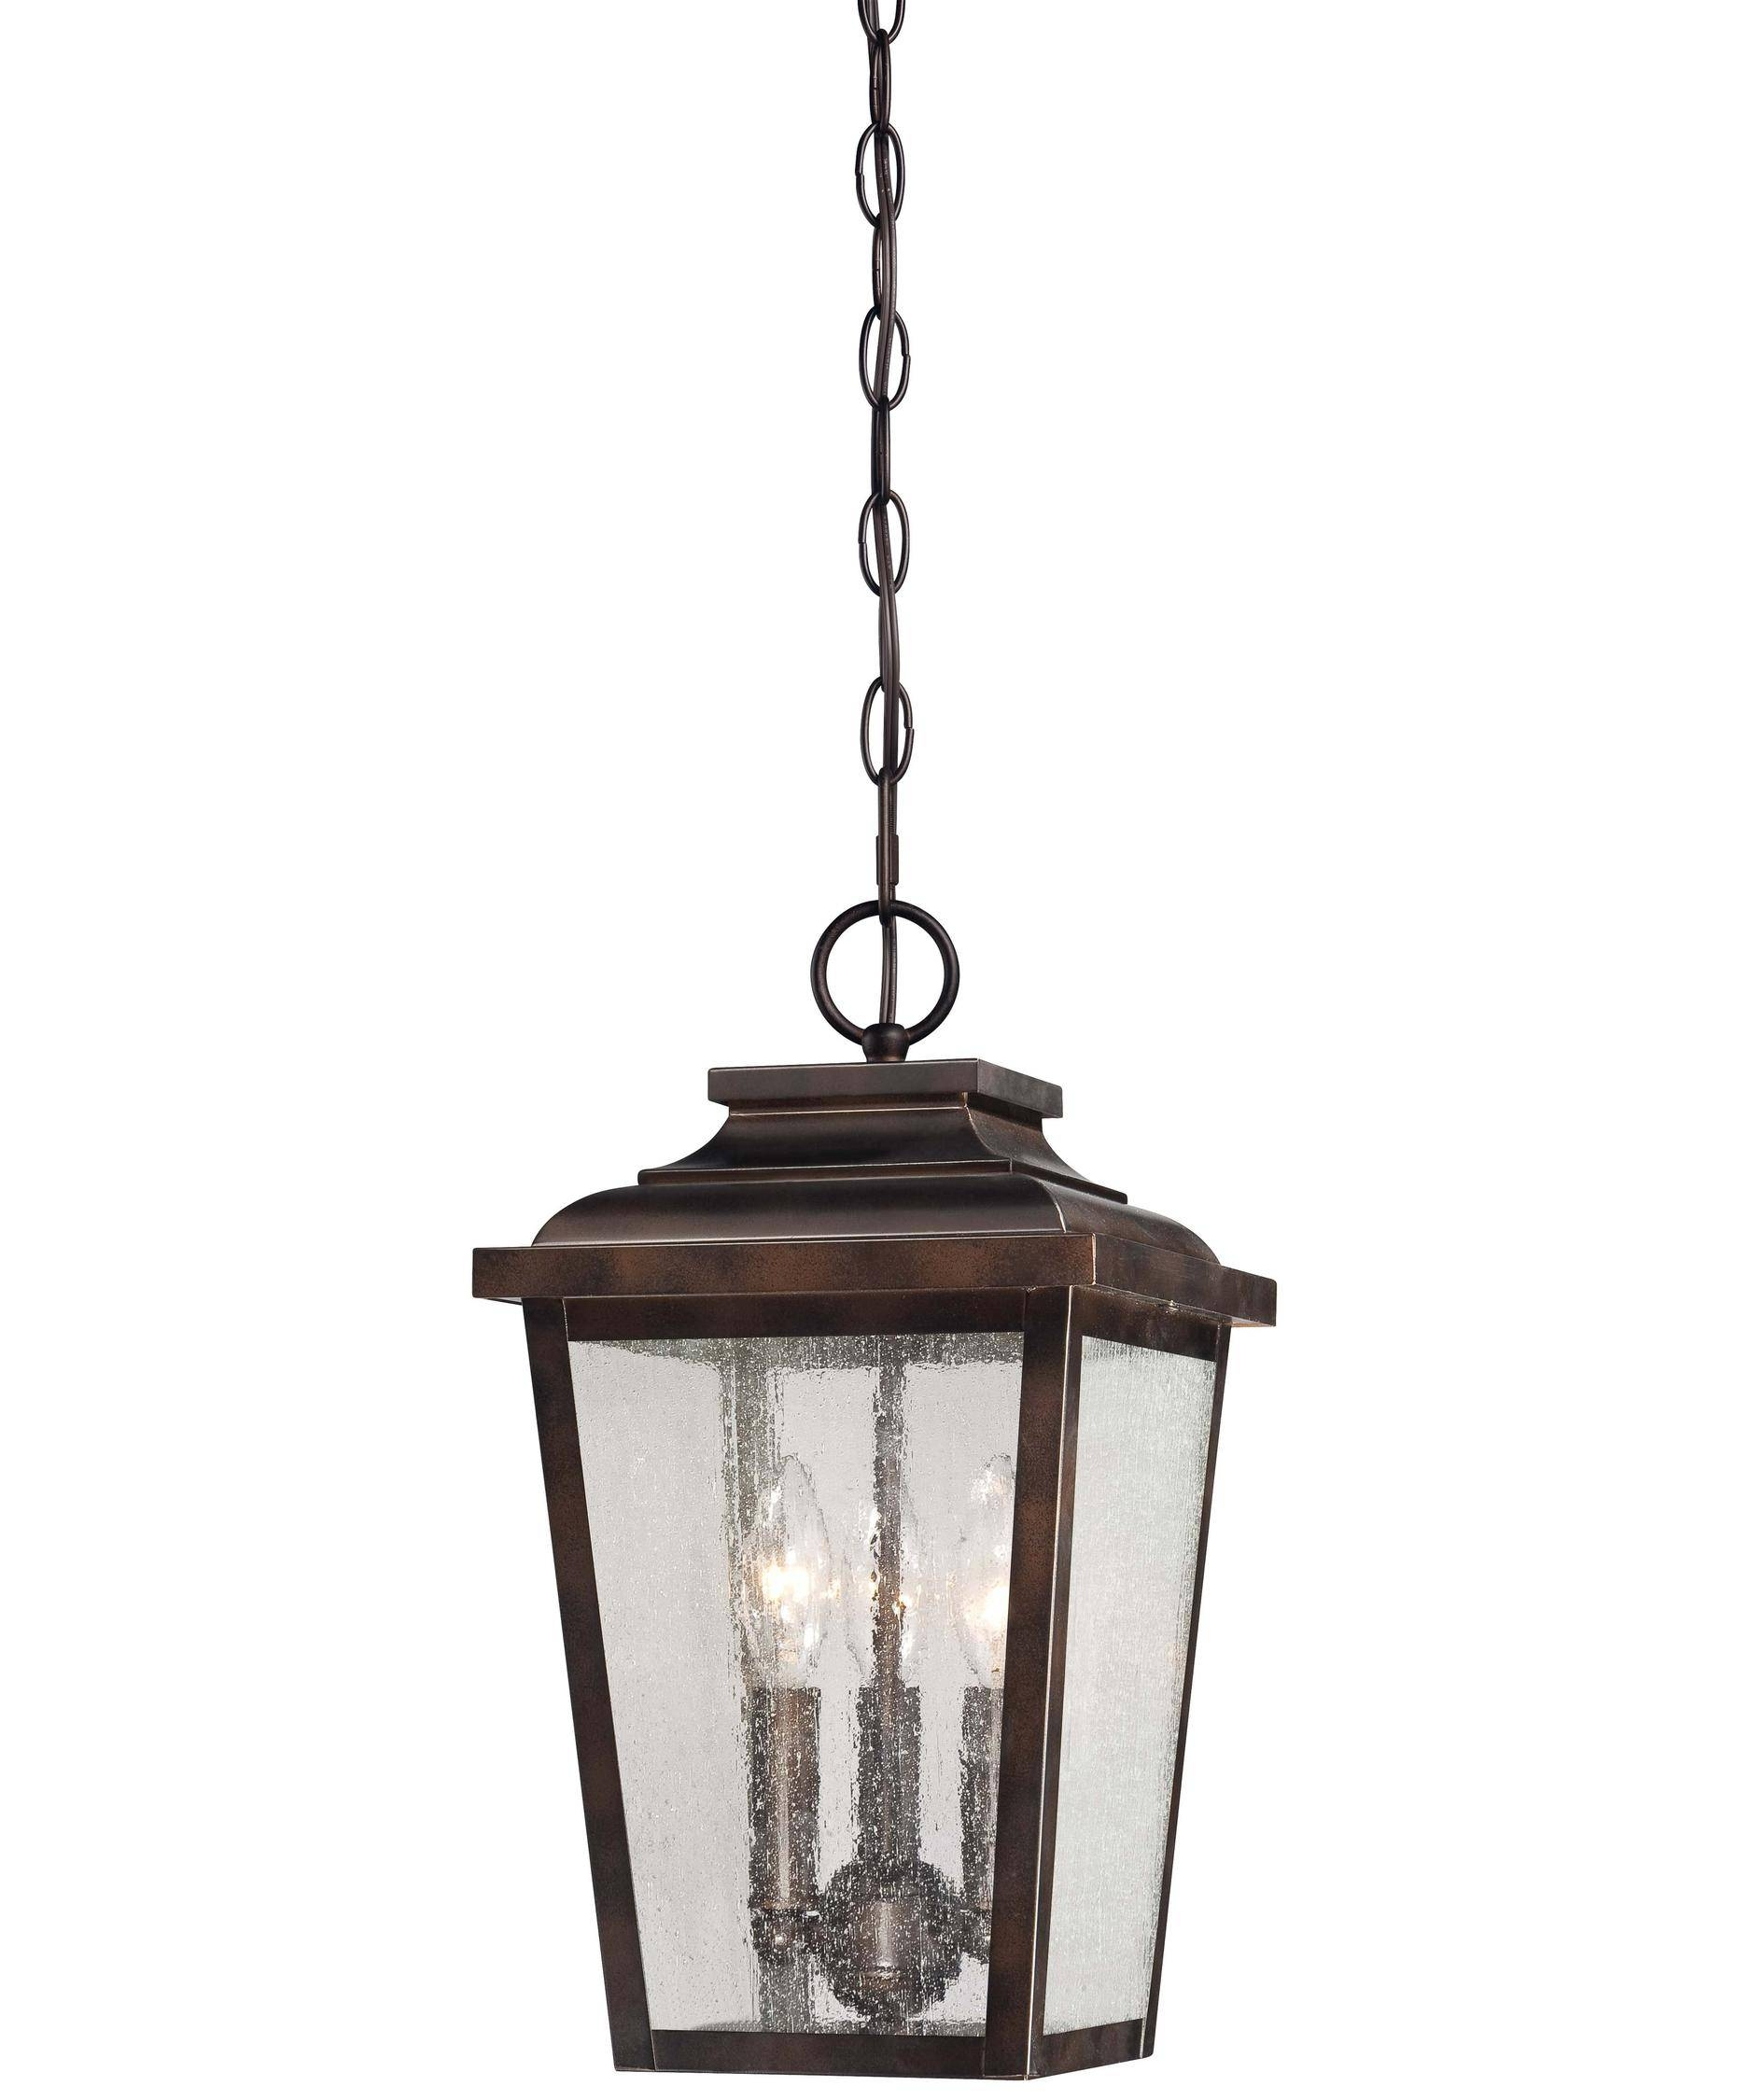 Pendant Lighting Ideas: Creative Designing Outdoor Pendant In Outside Pendant Lights (View 8 of 15)